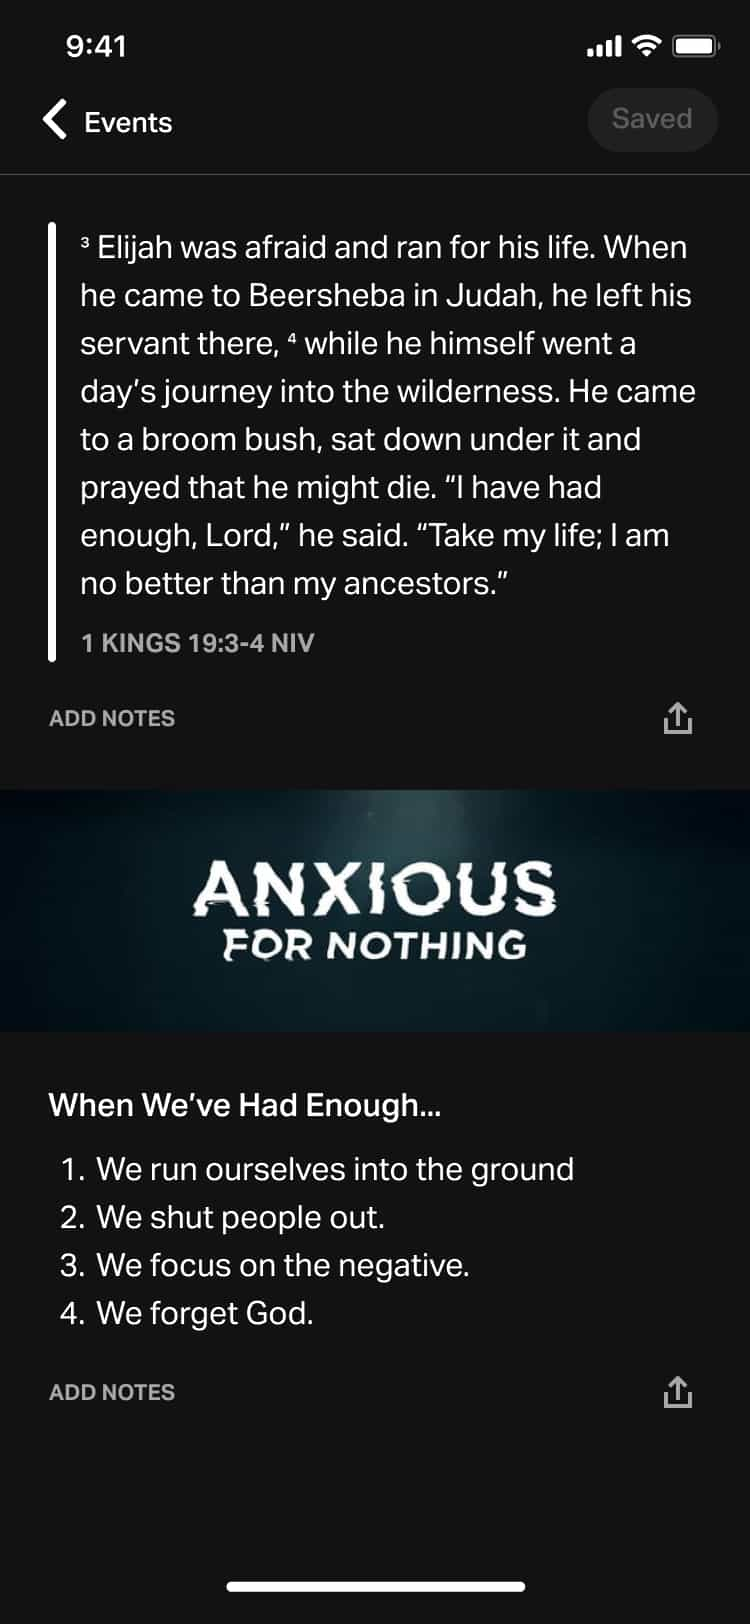 YouVersion Events scripture and plan